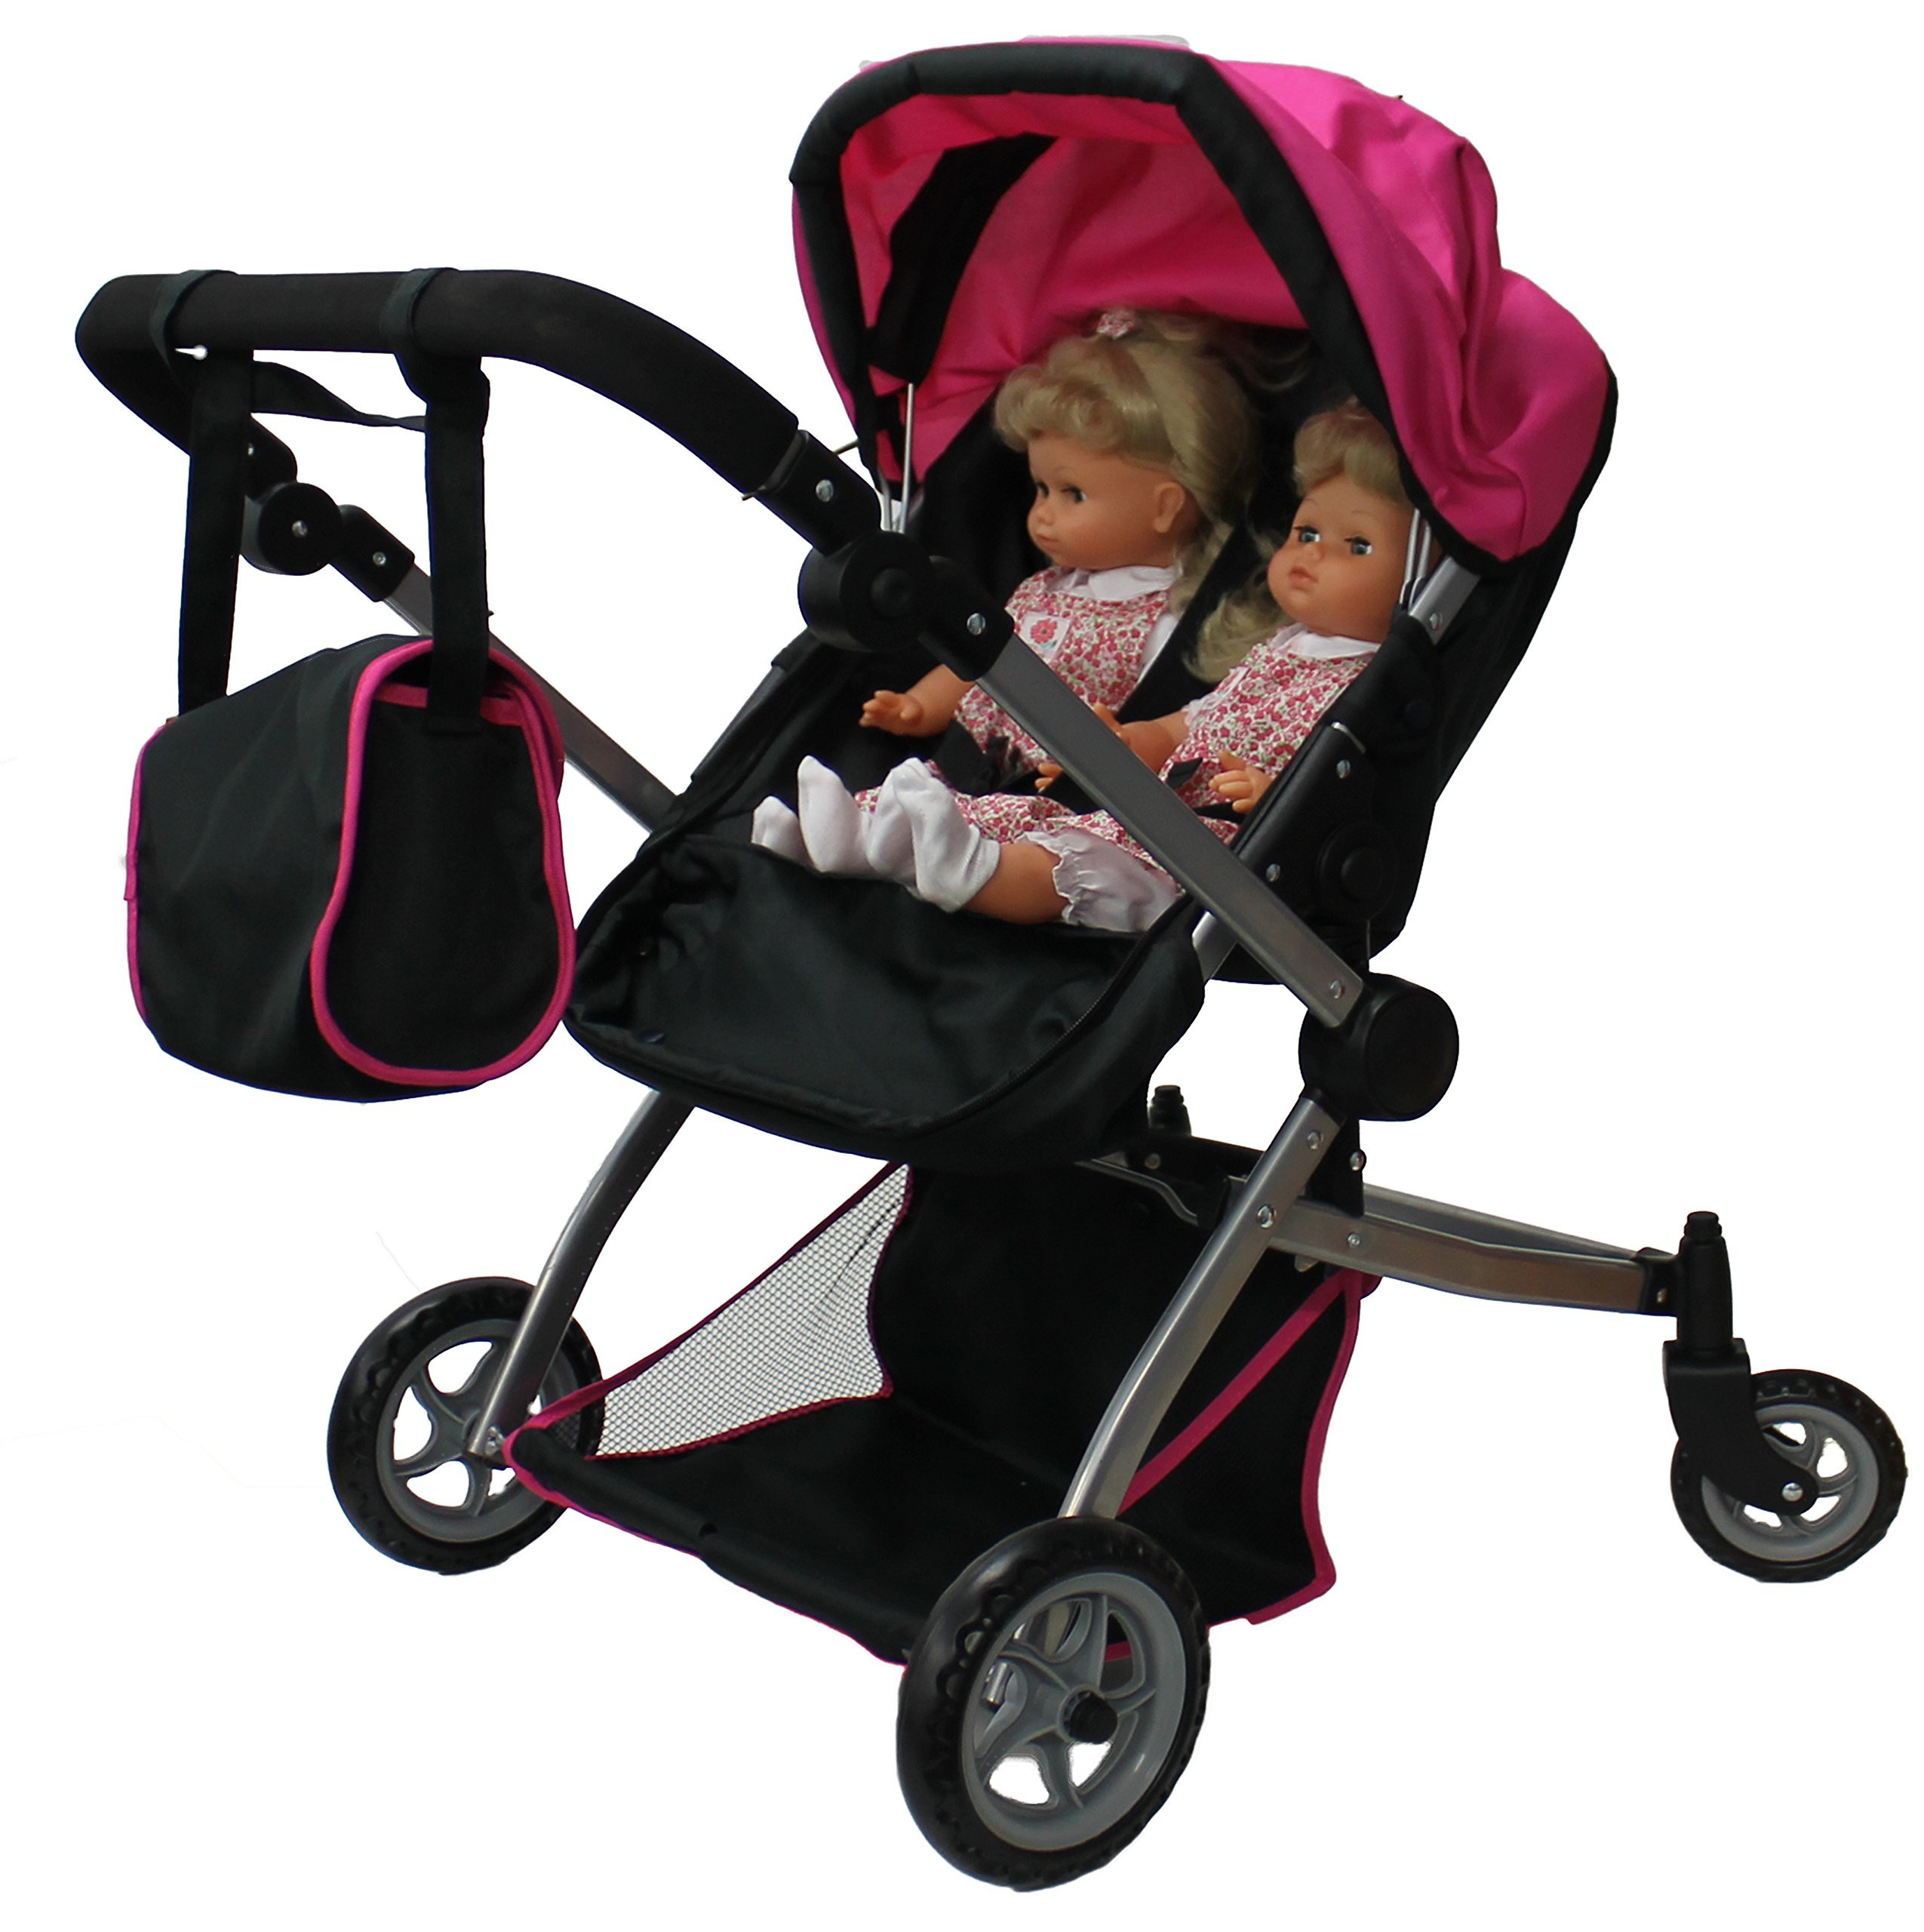 Babyboo Deluxe Twin Doll Pram Stroller with Free Carriage Multi Function View All s